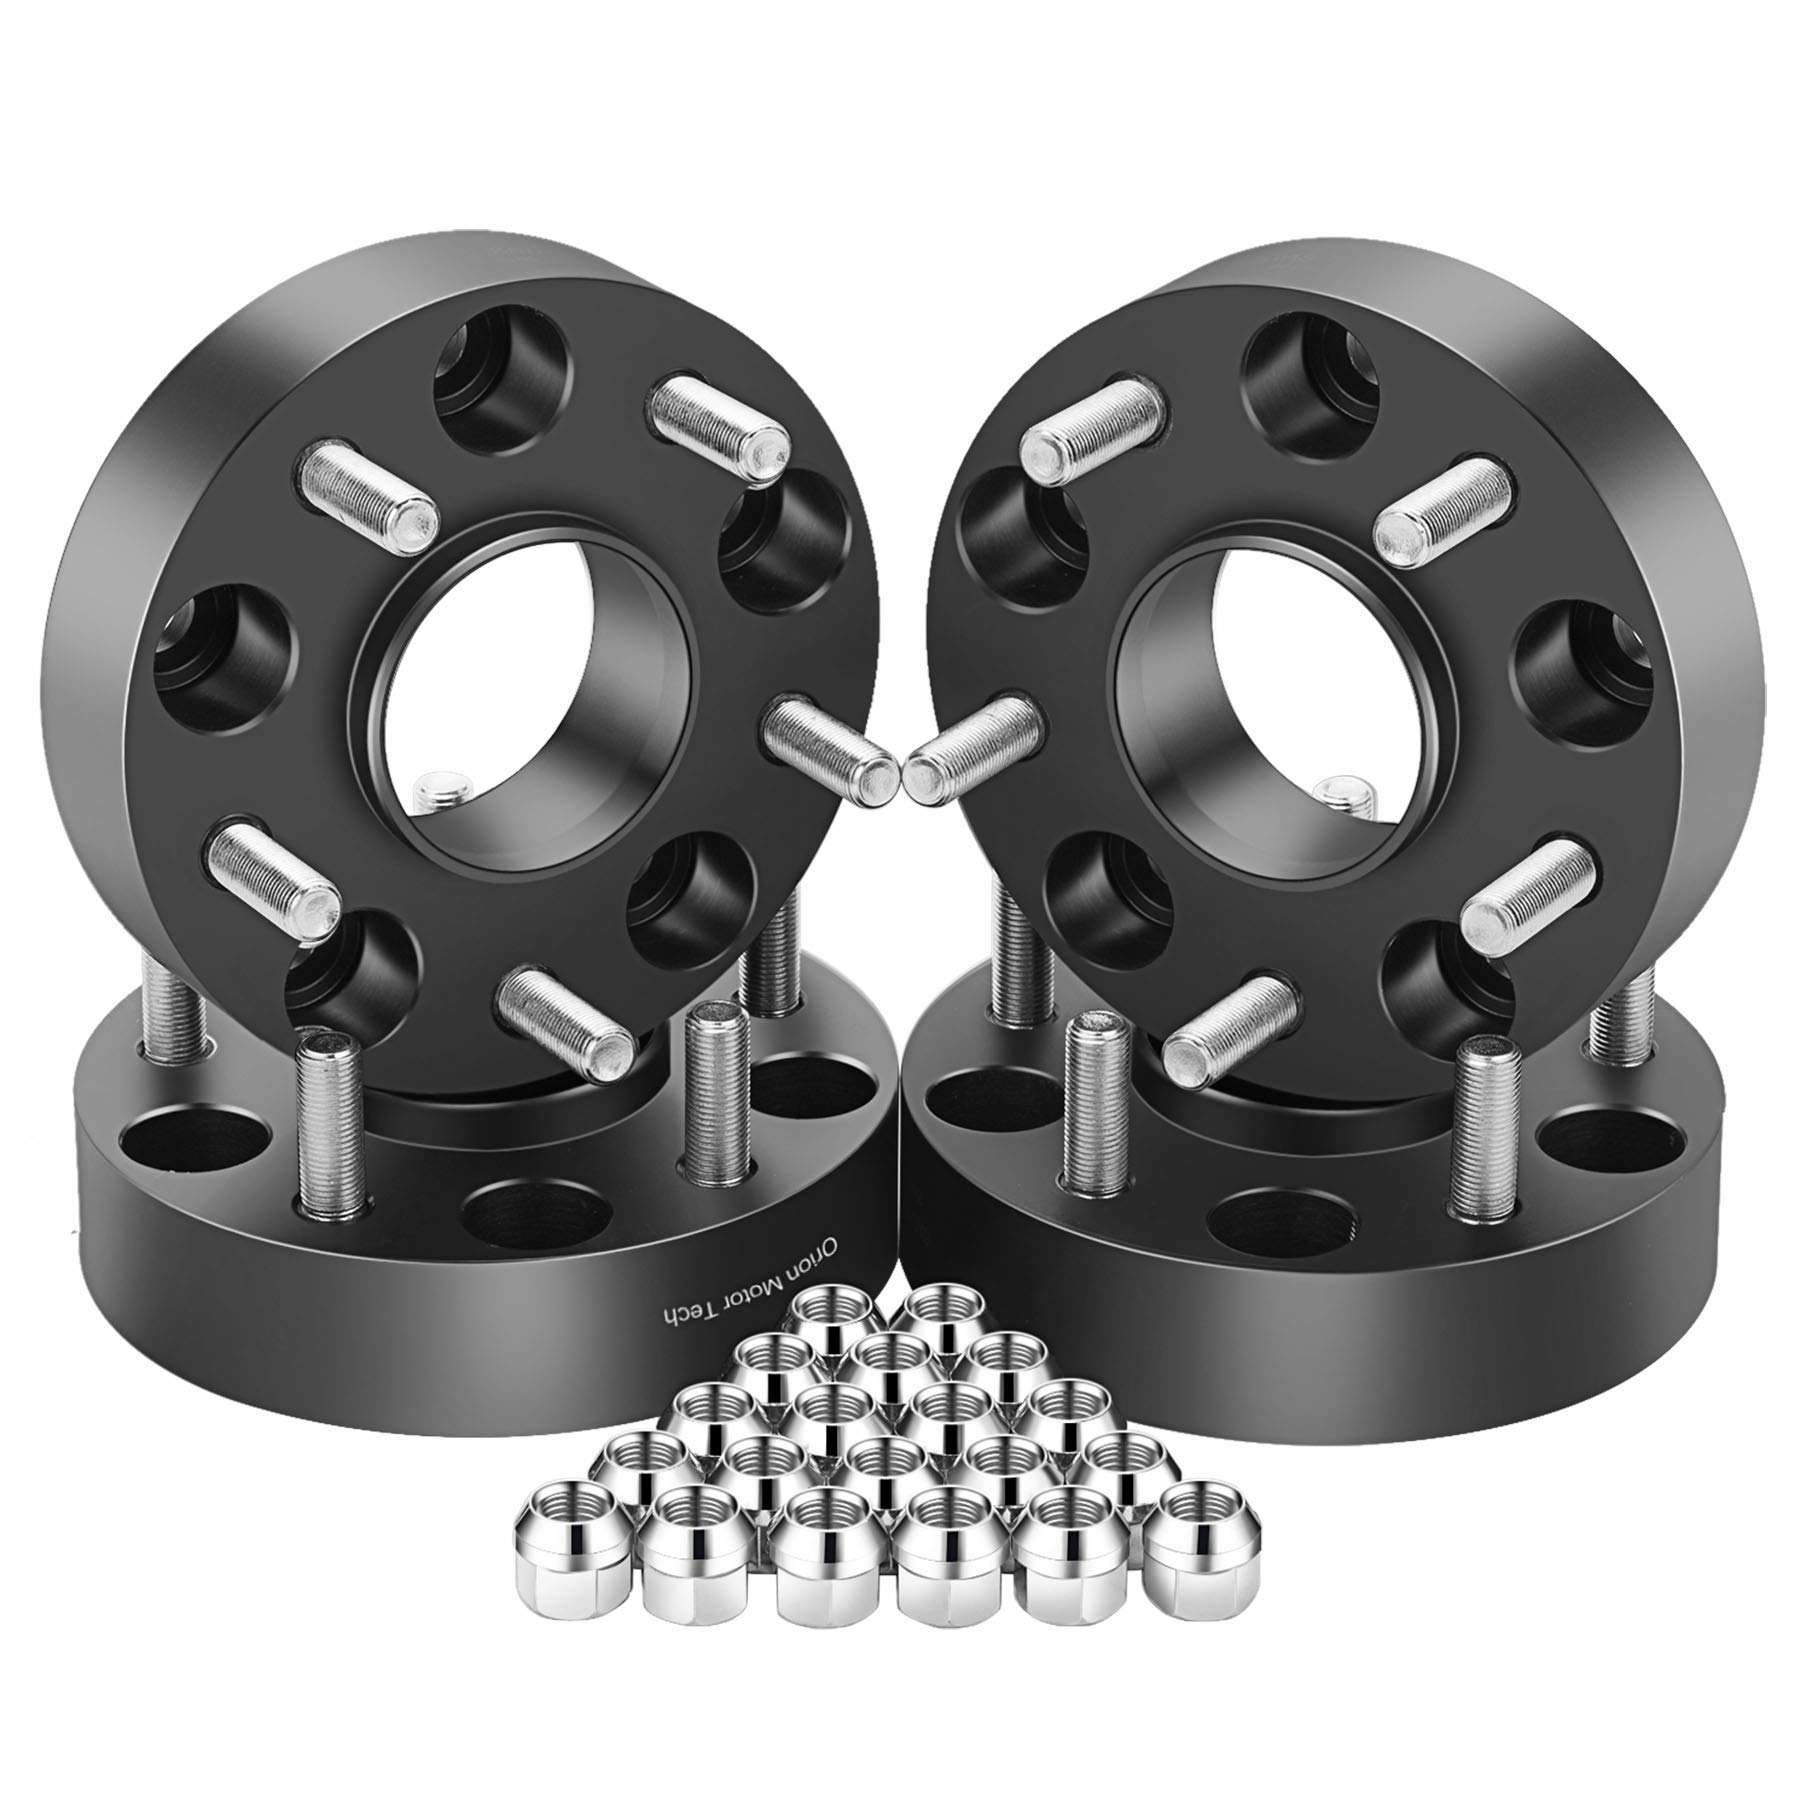 OrionMotorTech 5x5 Wheel Spacers 1.5 inches with 1/2-20 Studs for 007-2018 Jeep Wrangler JK, 1999-2010 Grand Cherokee WJ WK, 2006-2010 Commander XK, 4pcs by OrionMotorTech